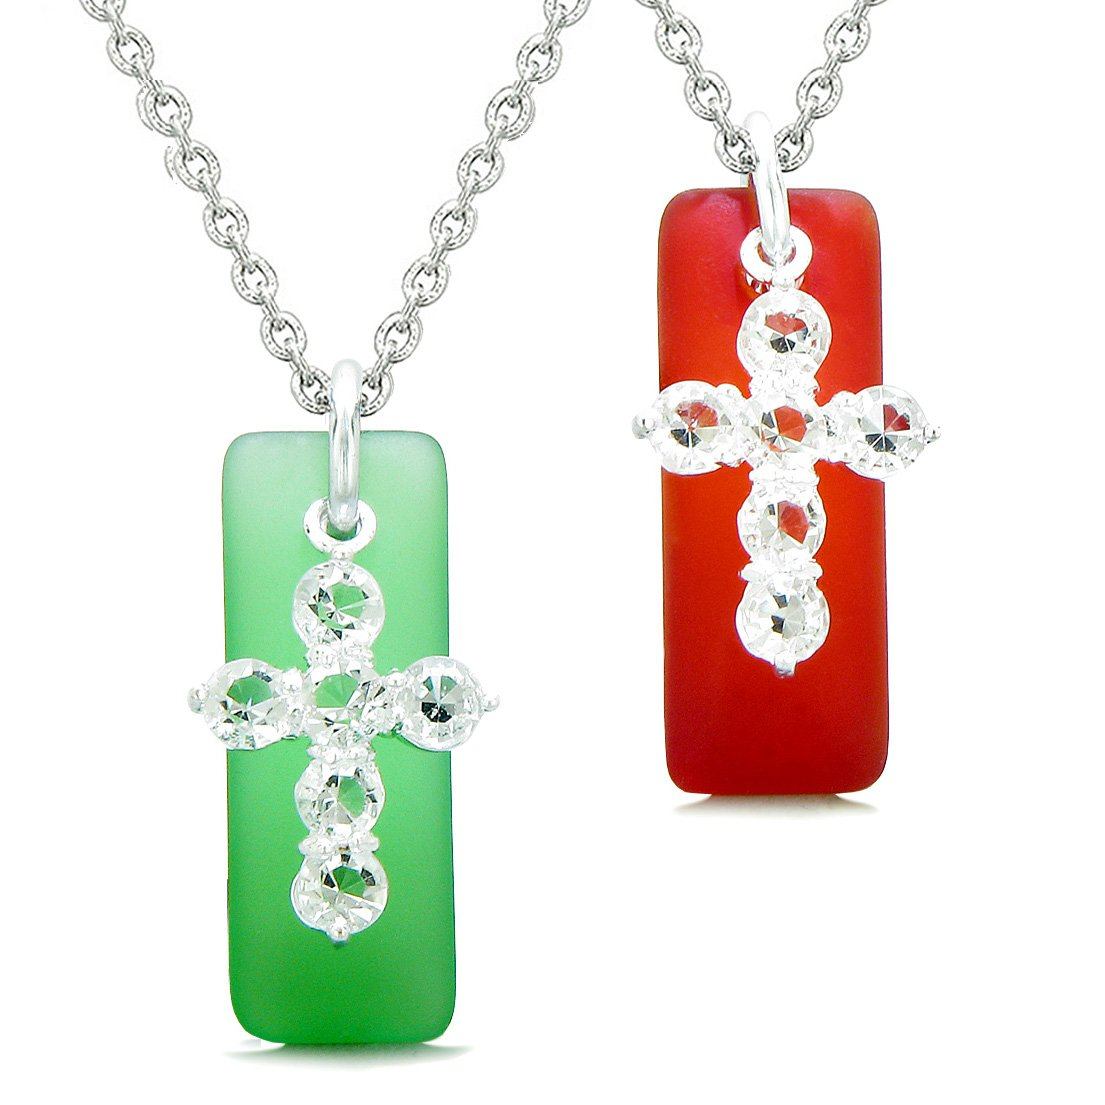 Sea Glass Ocean Green and Royal Red Tags Crystal Cross Love Couples BFF Set Protection Amulet Necklaces